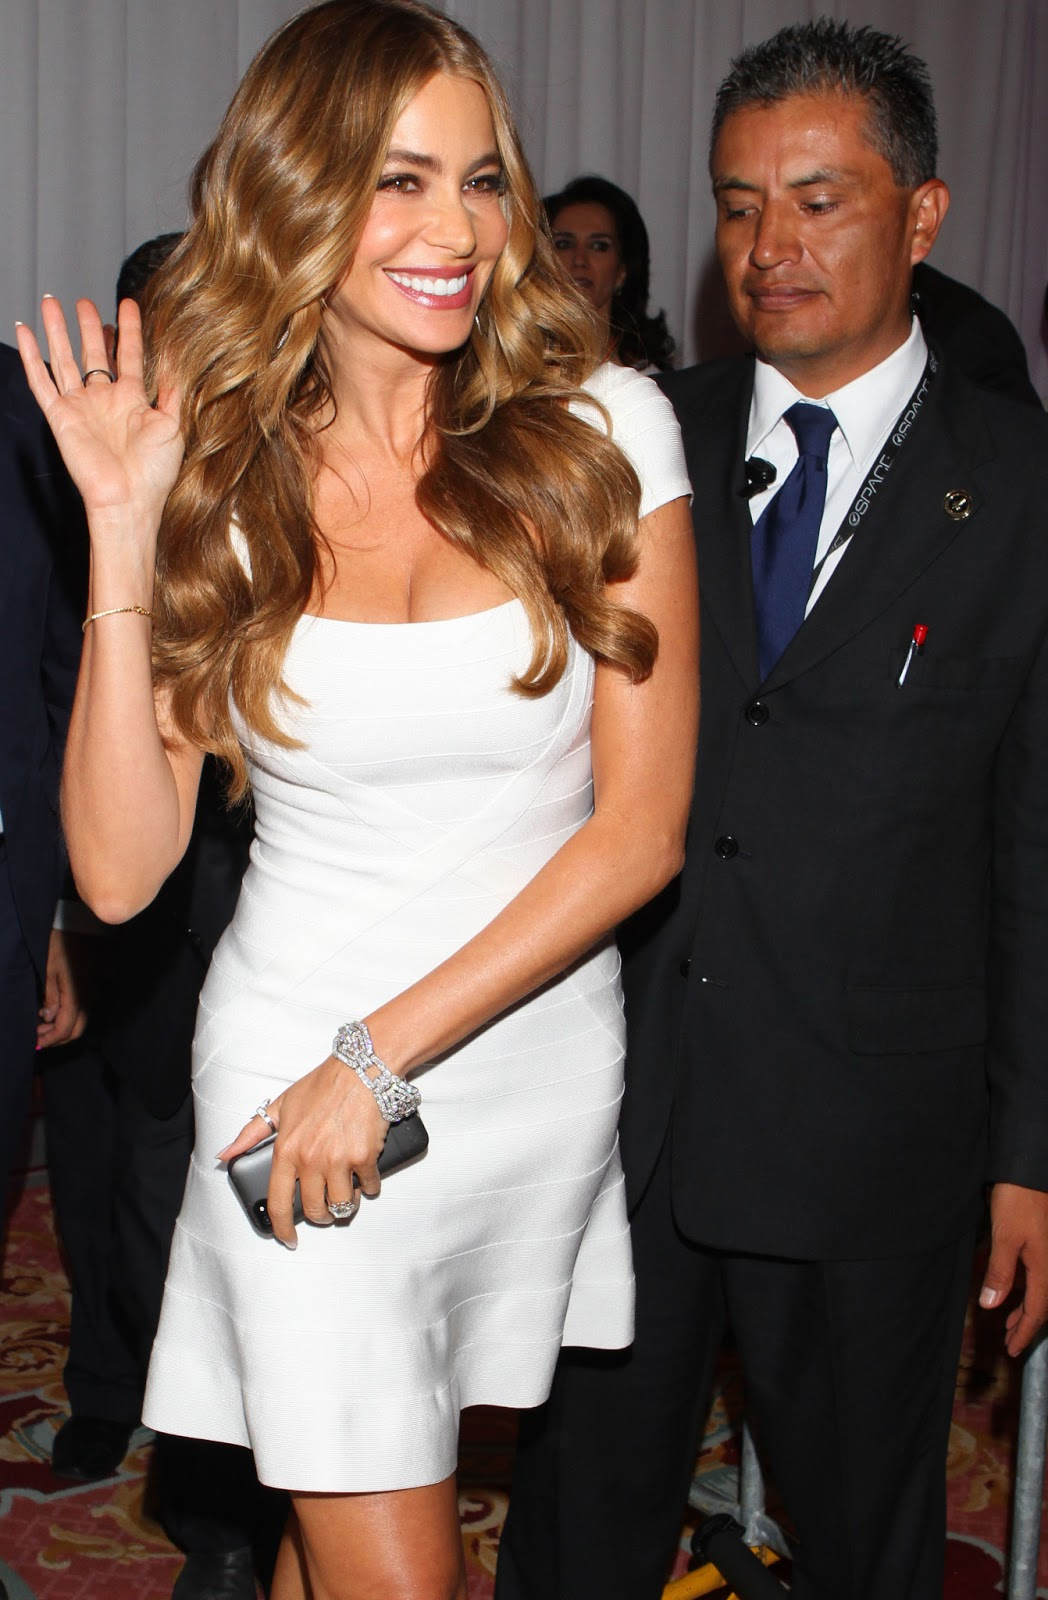 Sofia Vergara Hair Color Golden Caramel Brown Haircolor Page 1 Beauty And Care